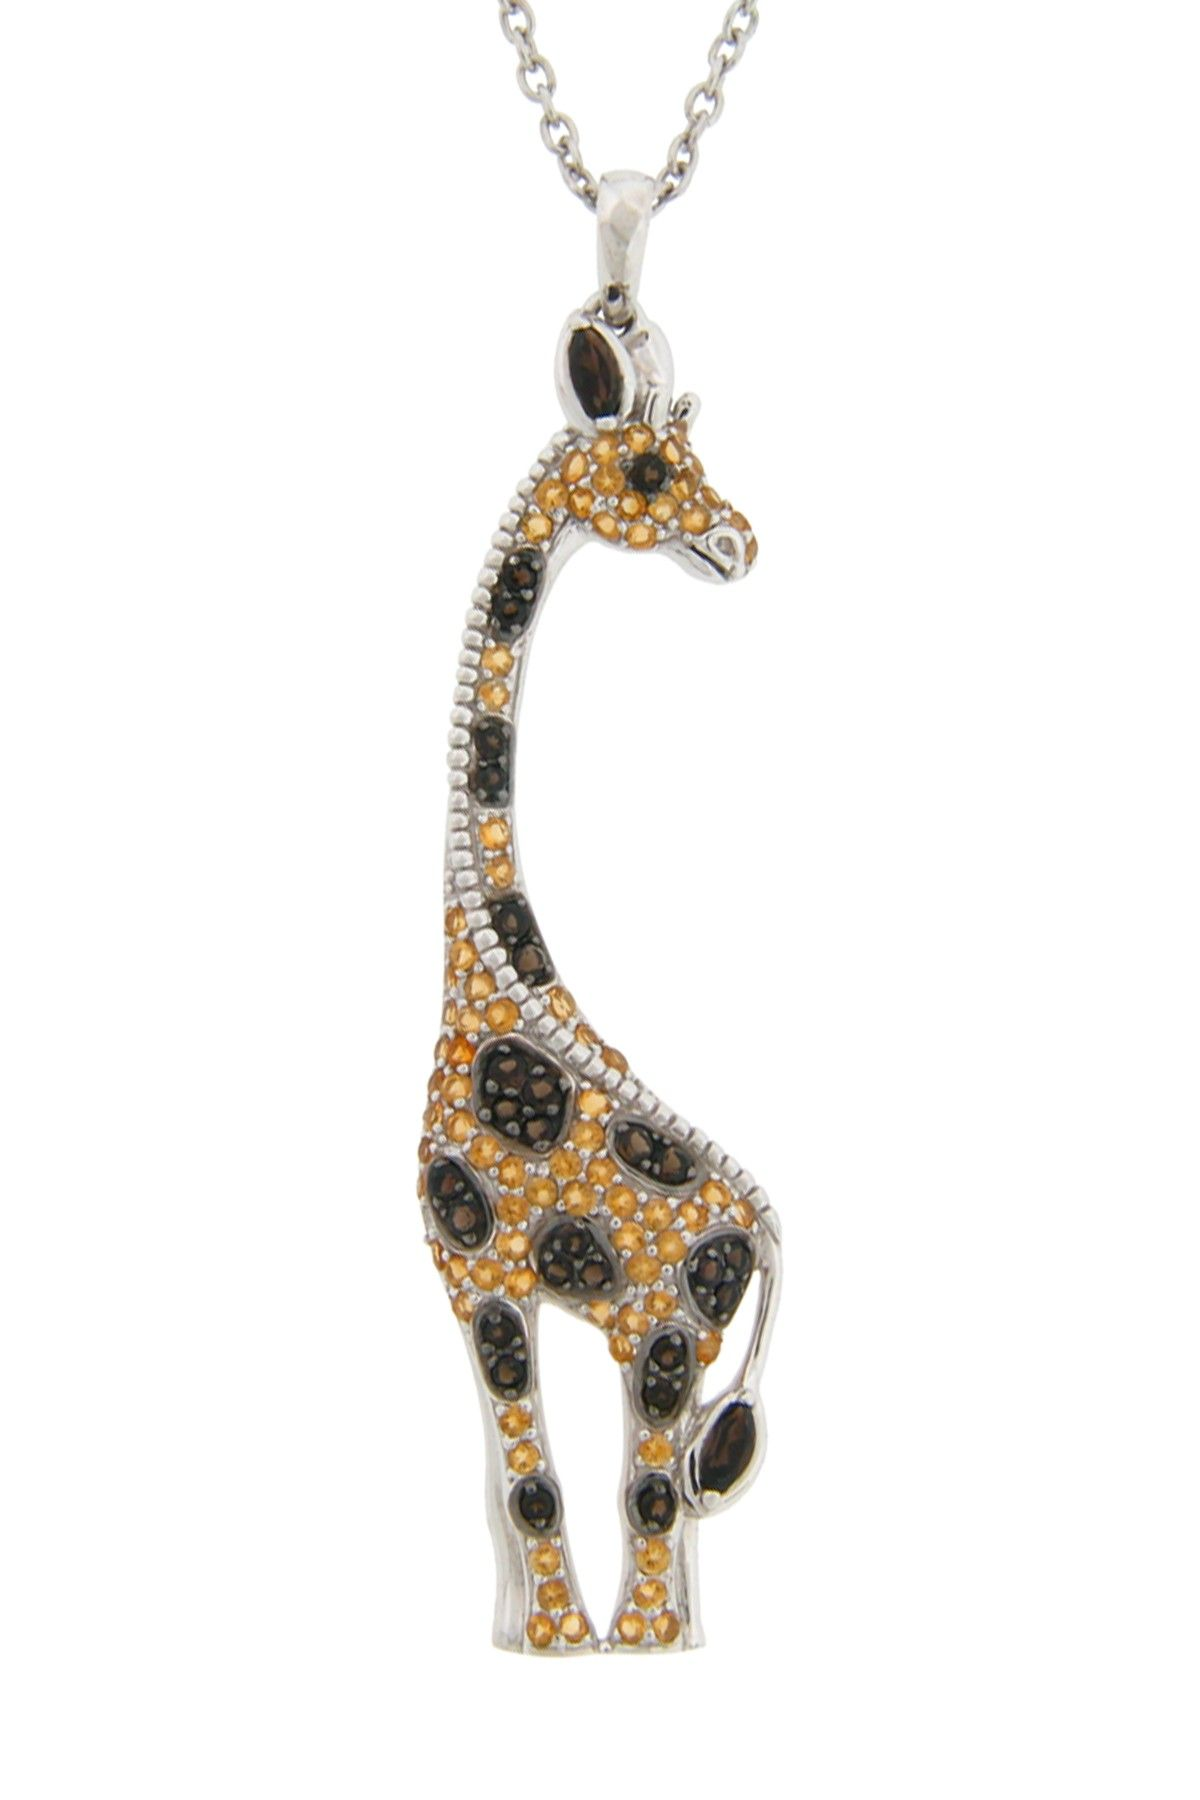 handmade jewelry pendant giraffe ltd products necklace